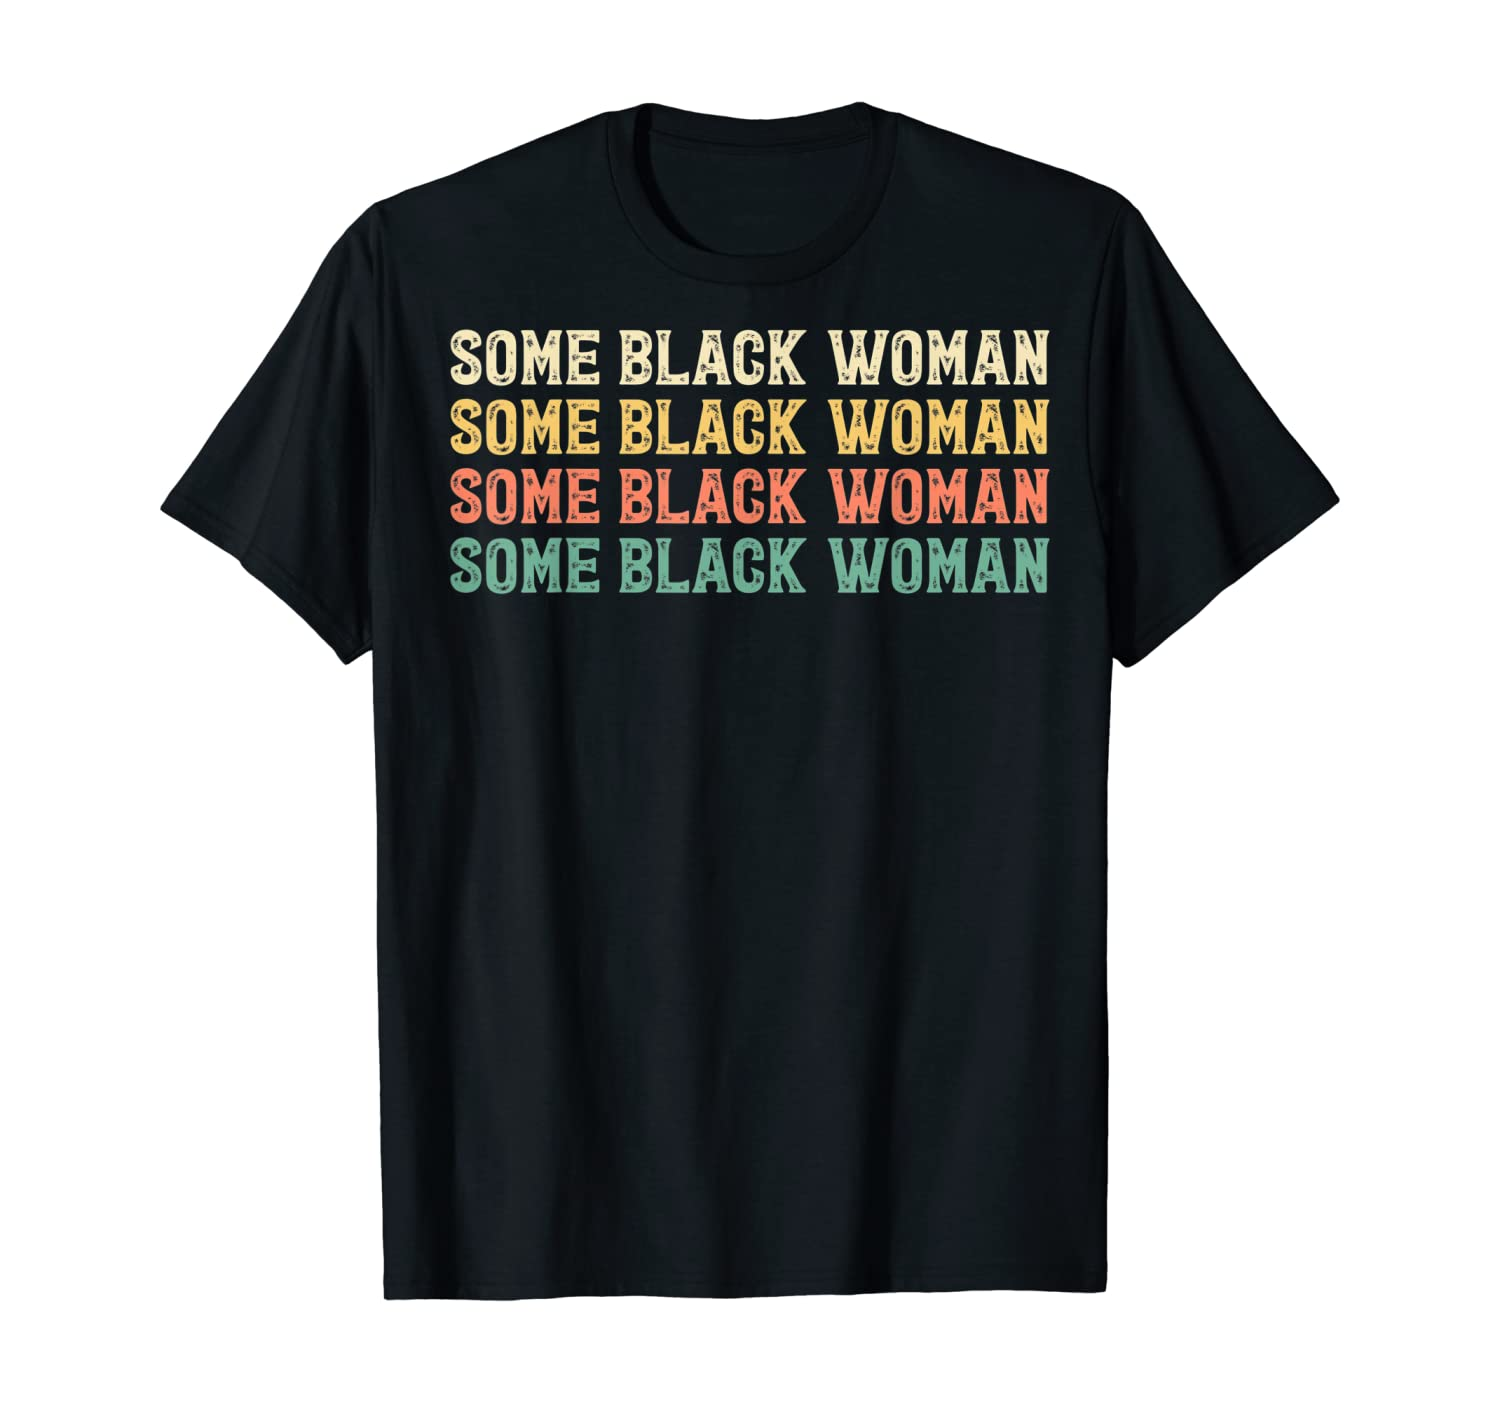 Some Black Woman Retro Vintage T-Shirt